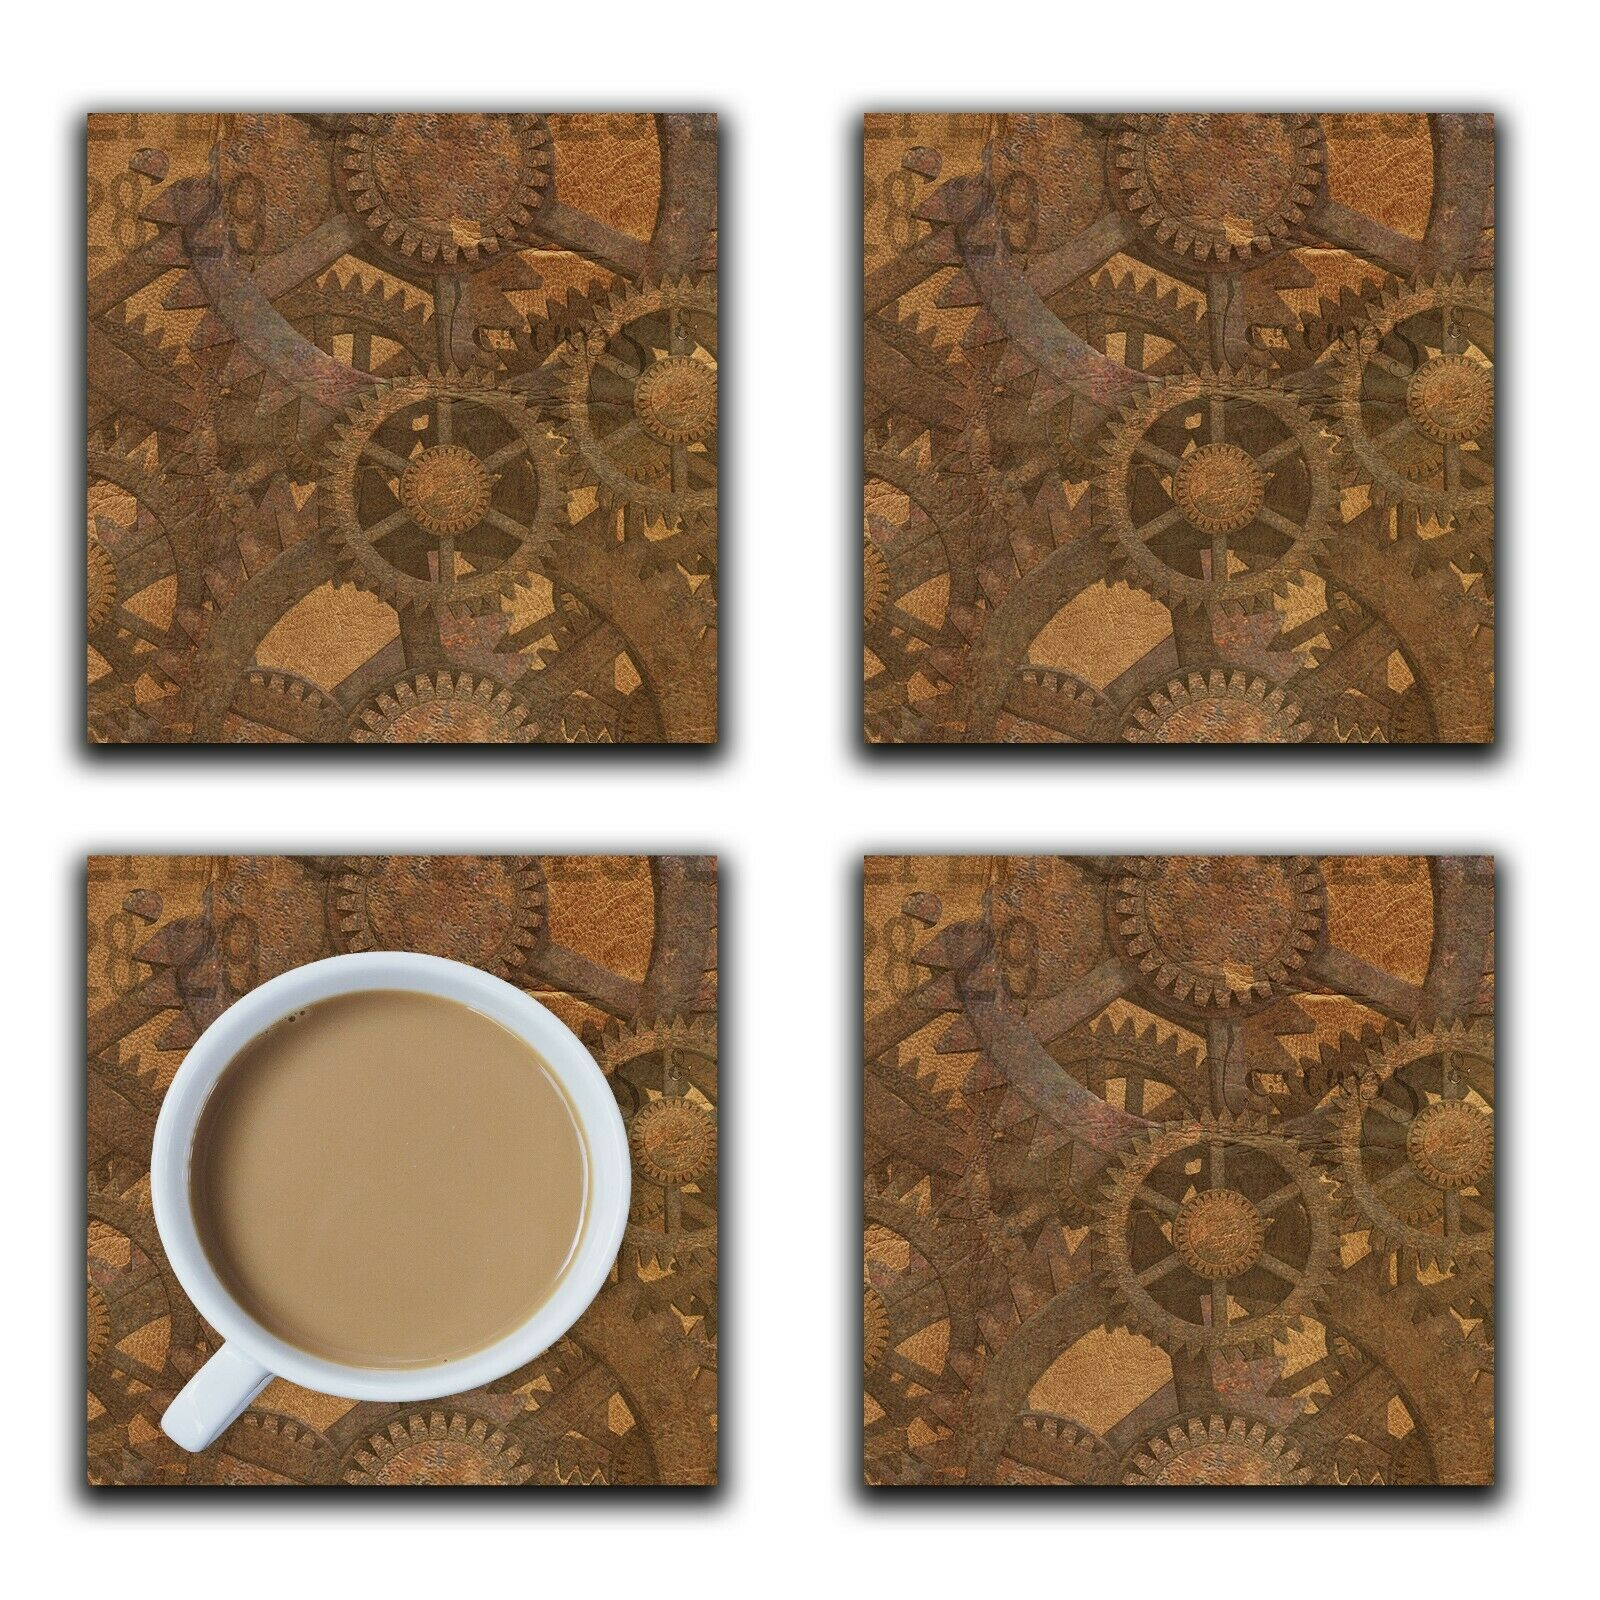 Embossi Printed Steampunk Gears on Leather Pattern, wood or ceramic tile, set of 4